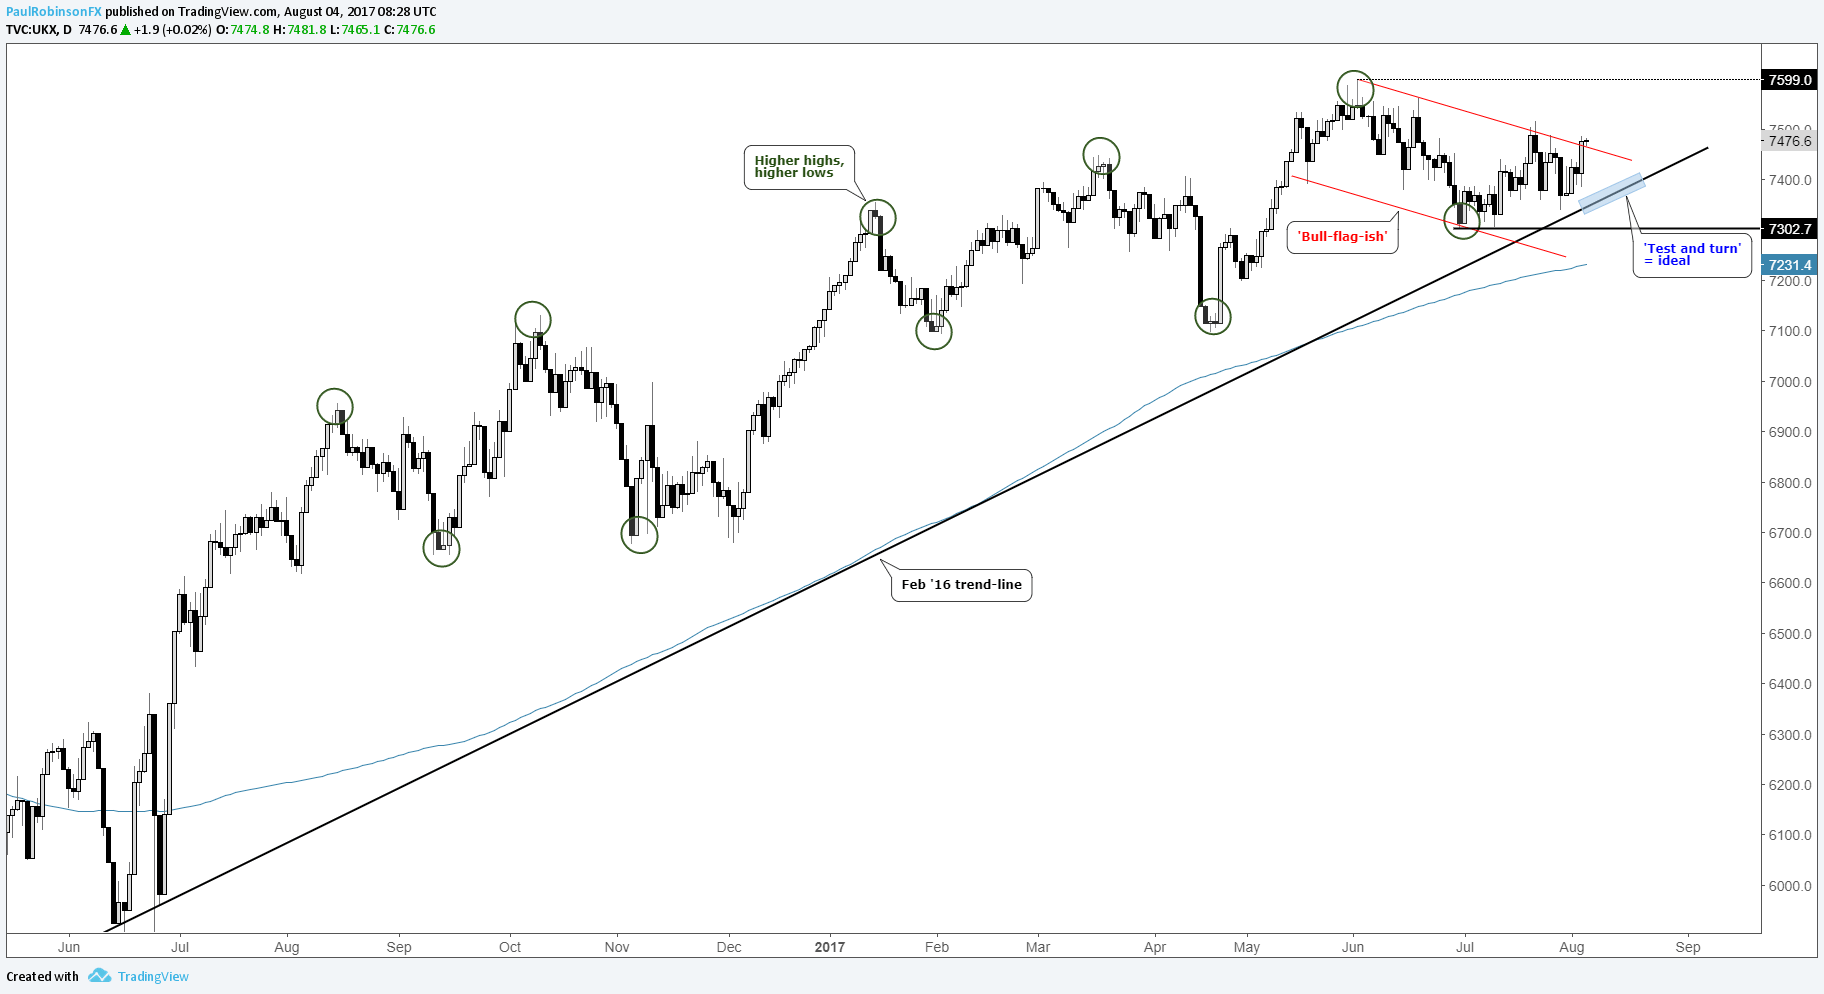 FTSE 100 Trying to Turn the Corner Towards New Record Highs